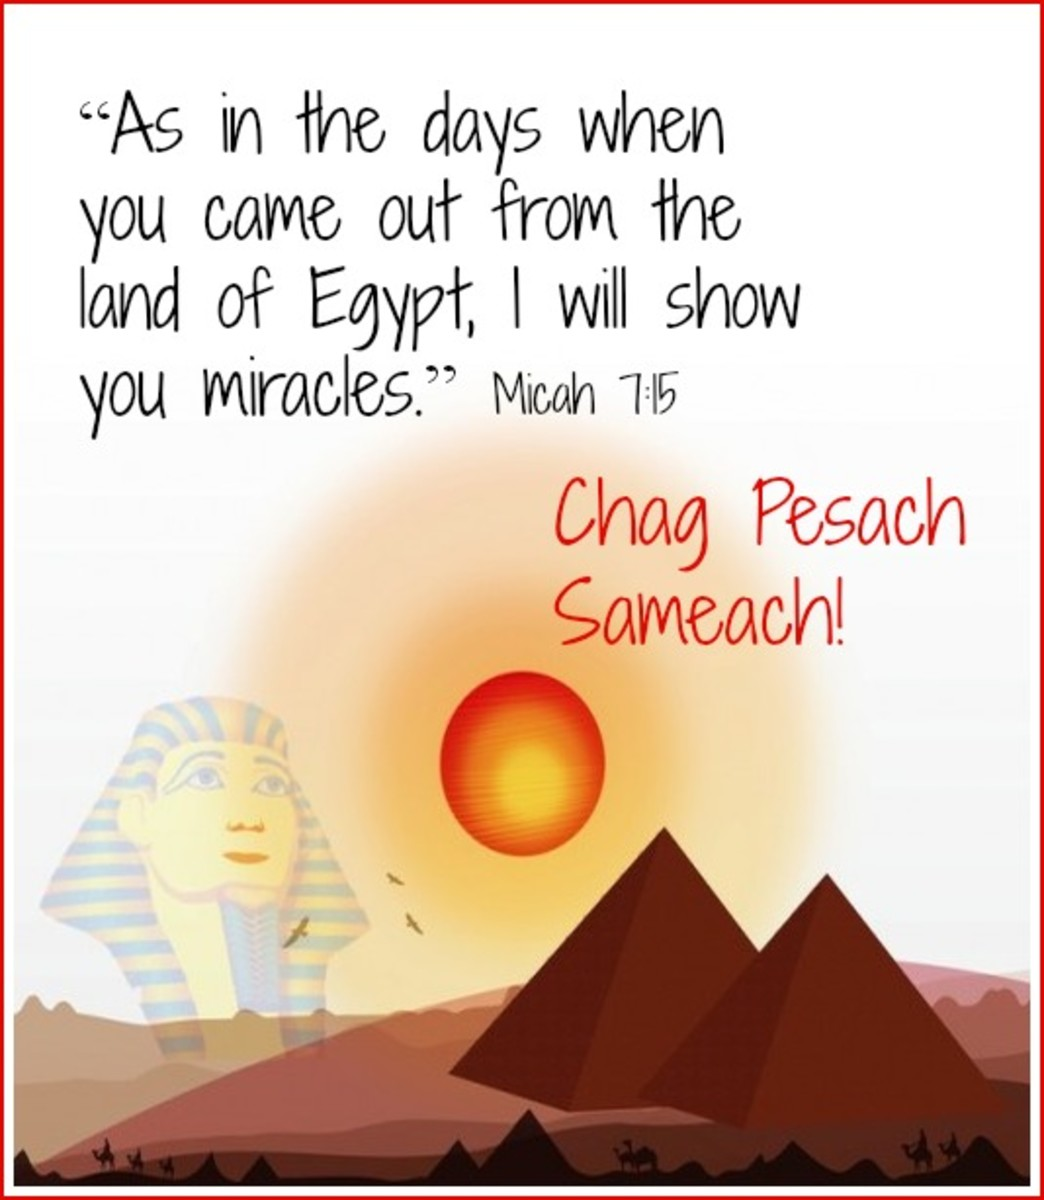 Happy passover find a cool passover greeting hubpages coming out of egypt passover greeting m4hsunfo